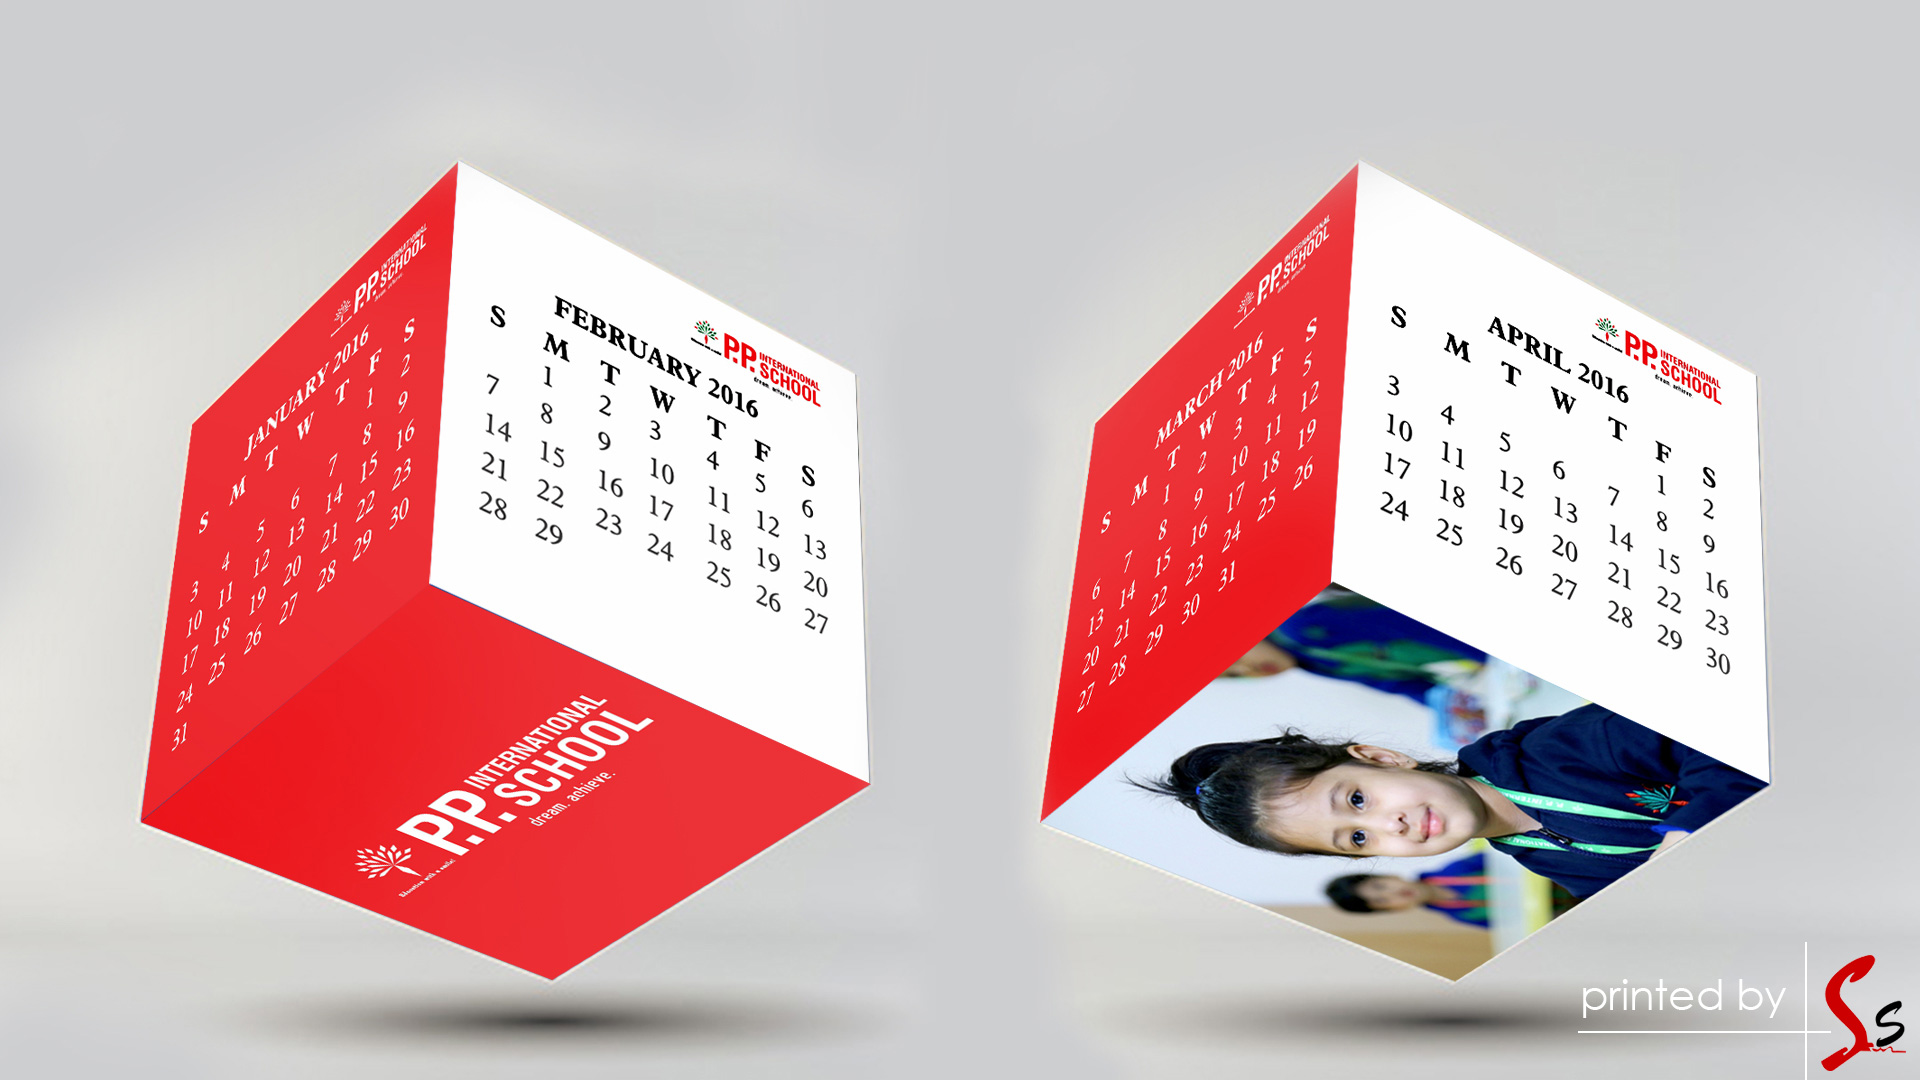 PP International School Cube Calendar Printing